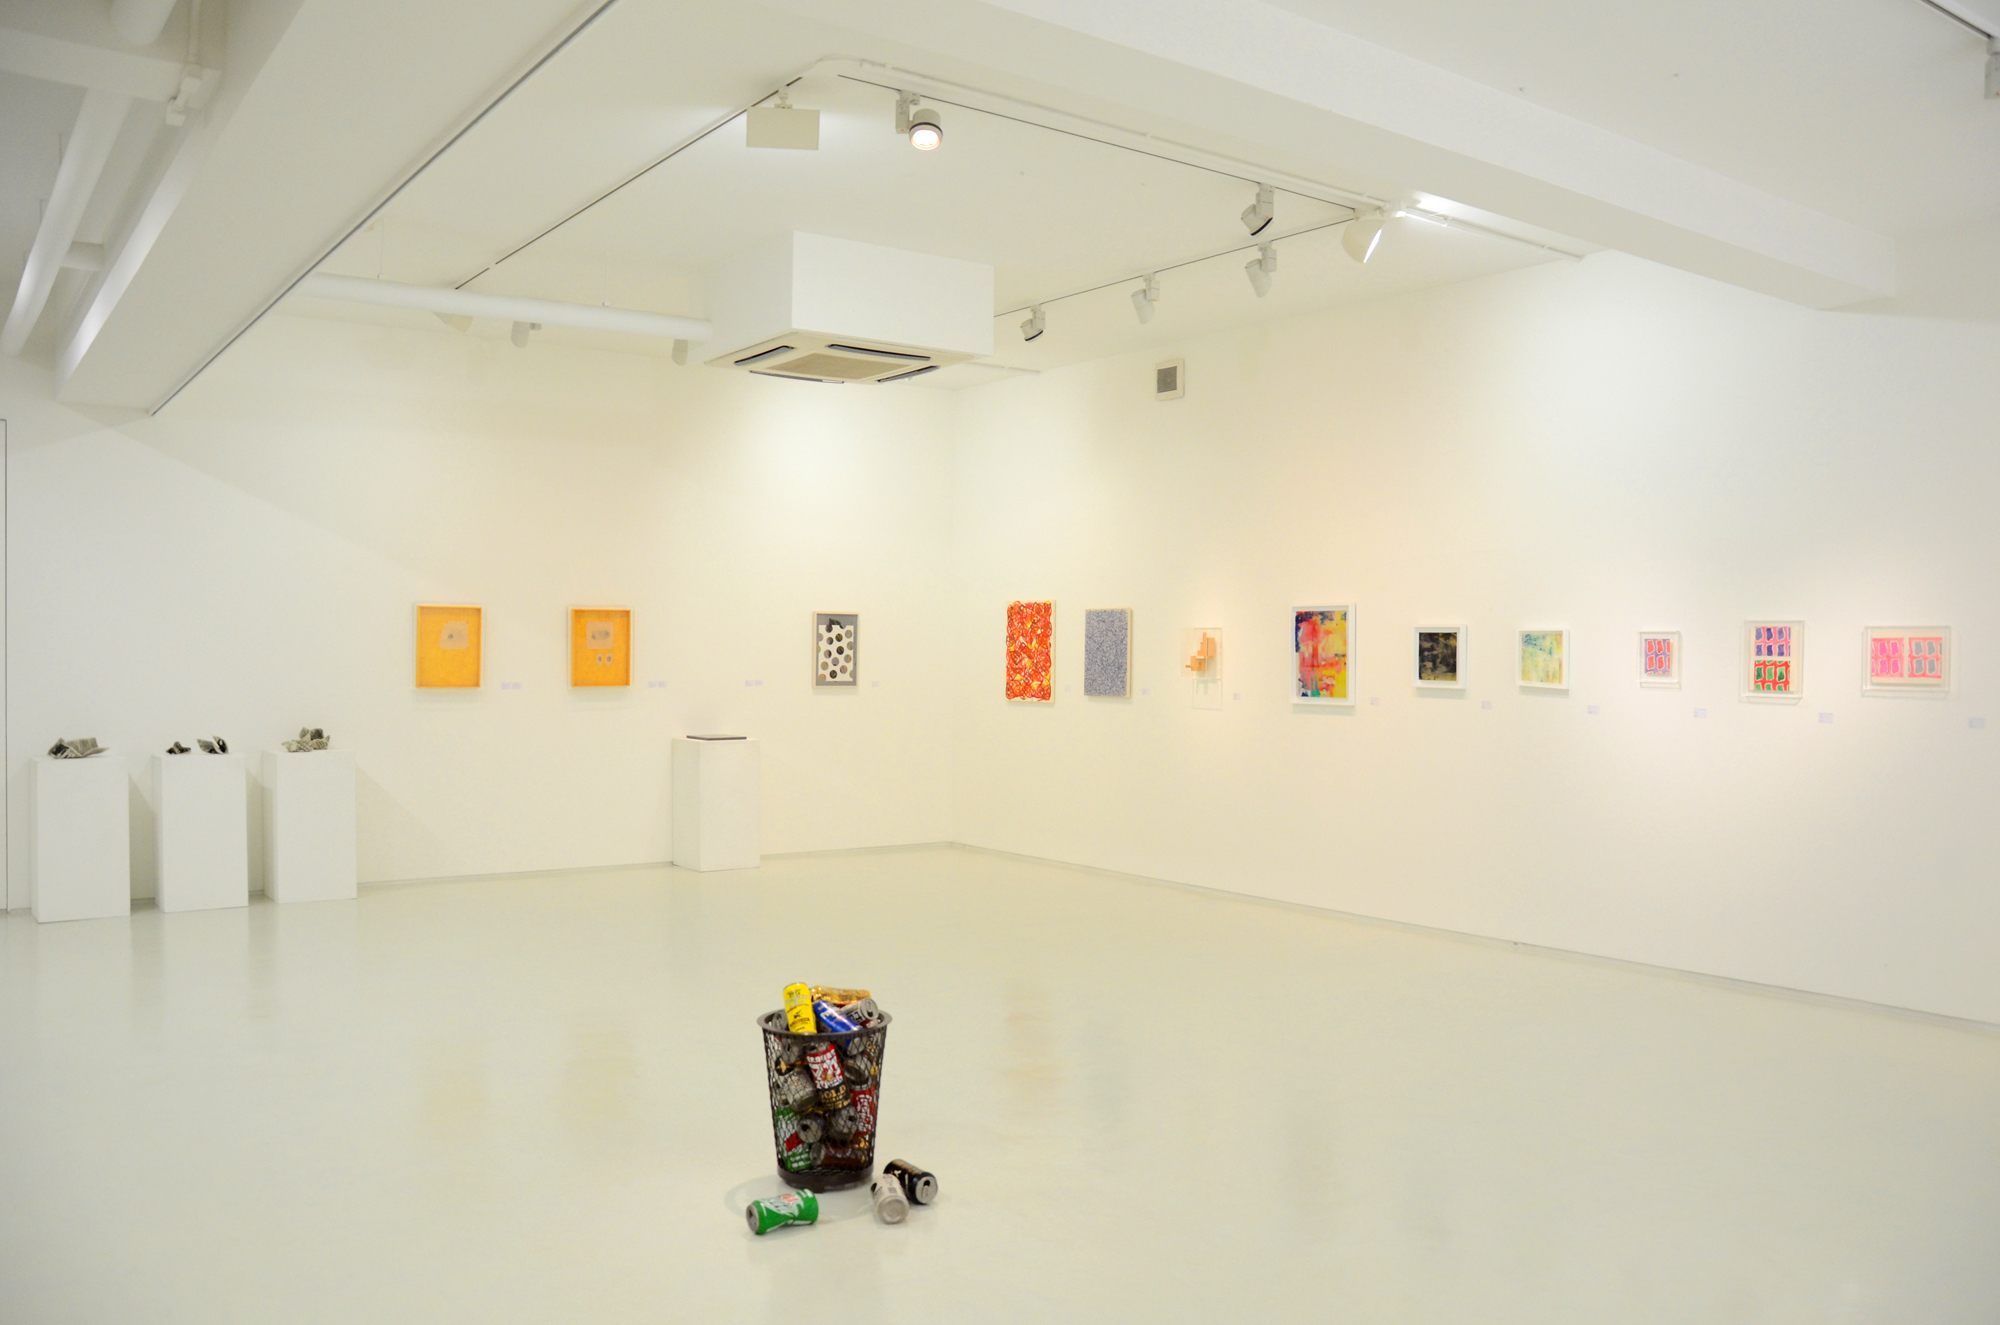 コレクション展:Affordable Art Exhibition